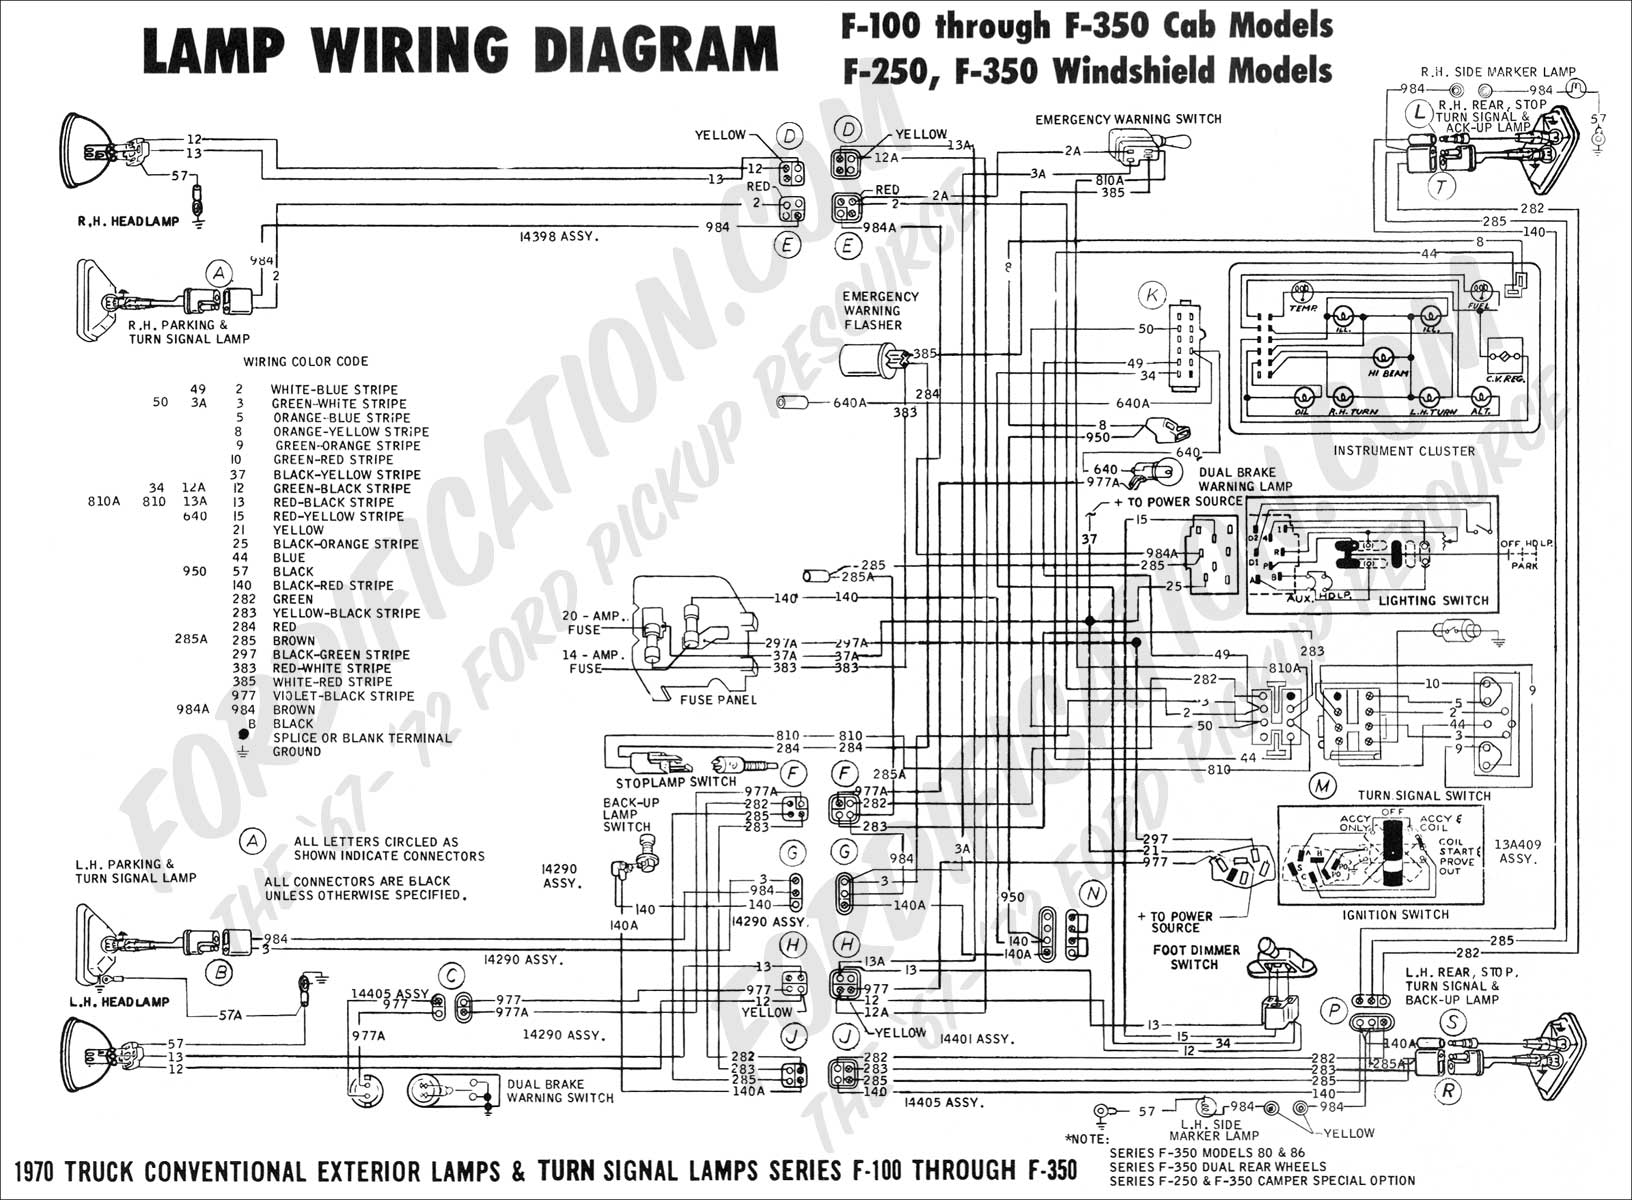 wiring diagram_70ext lights01 ford truck technical drawings and schematics section h wiring 2004 ford f350 tail light wiring diagram at honlapkeszites.co